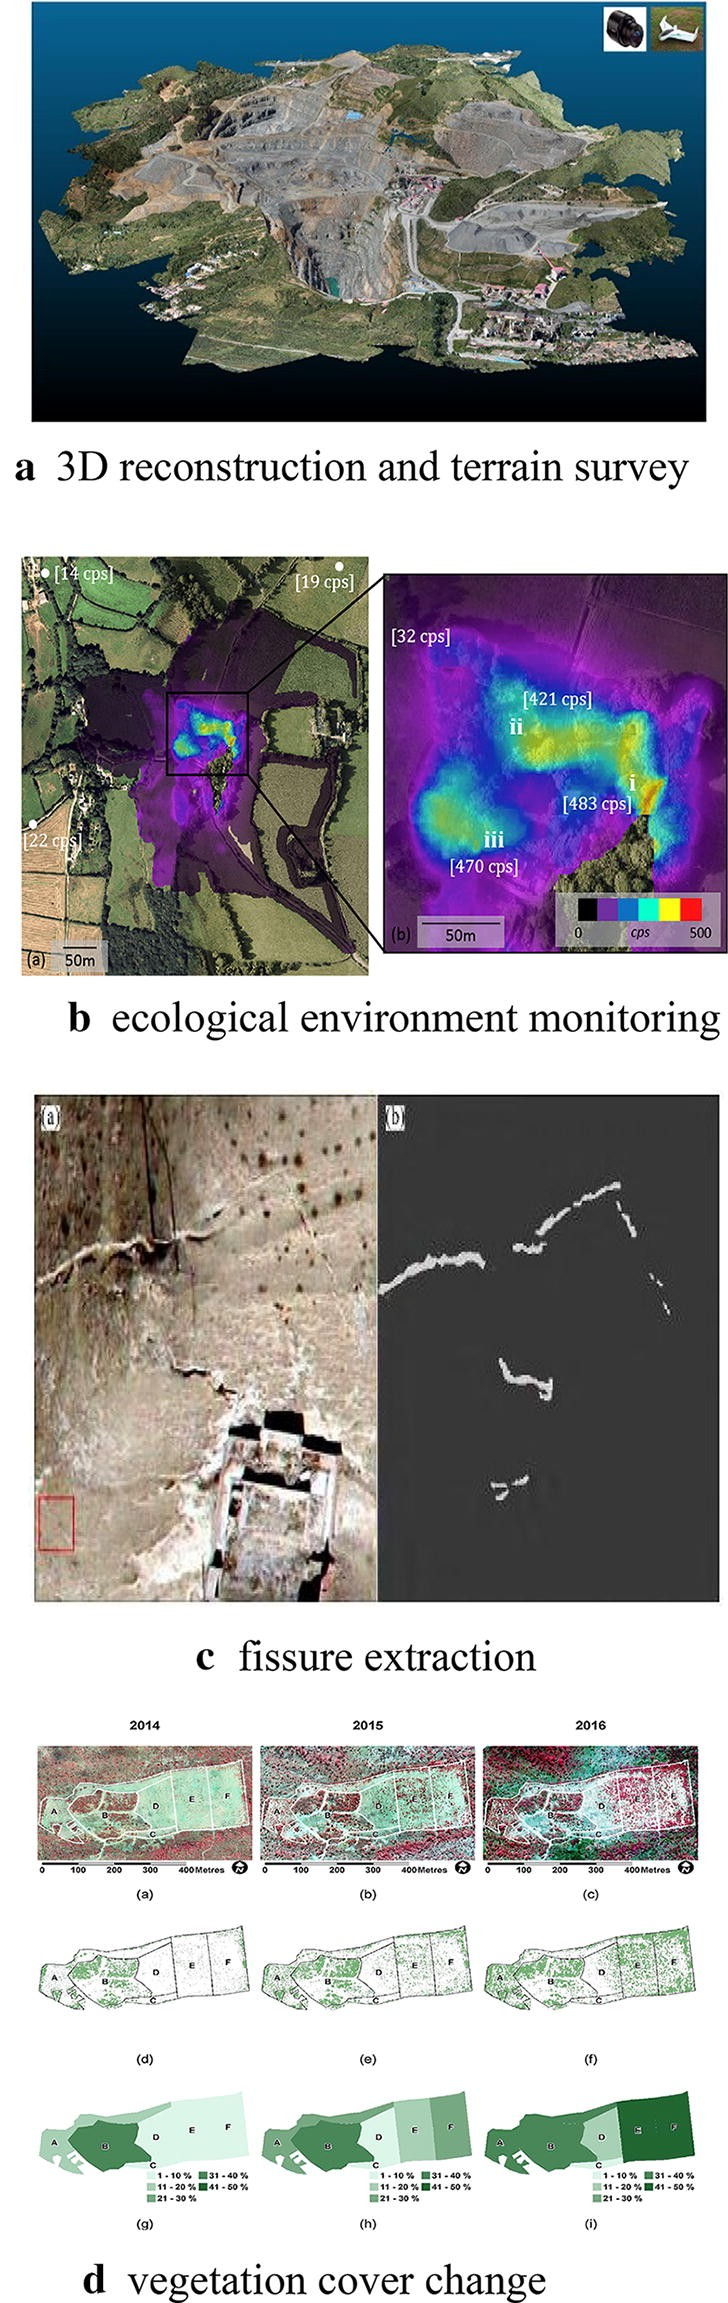 A review of UAV monitoring in mining areas: current status